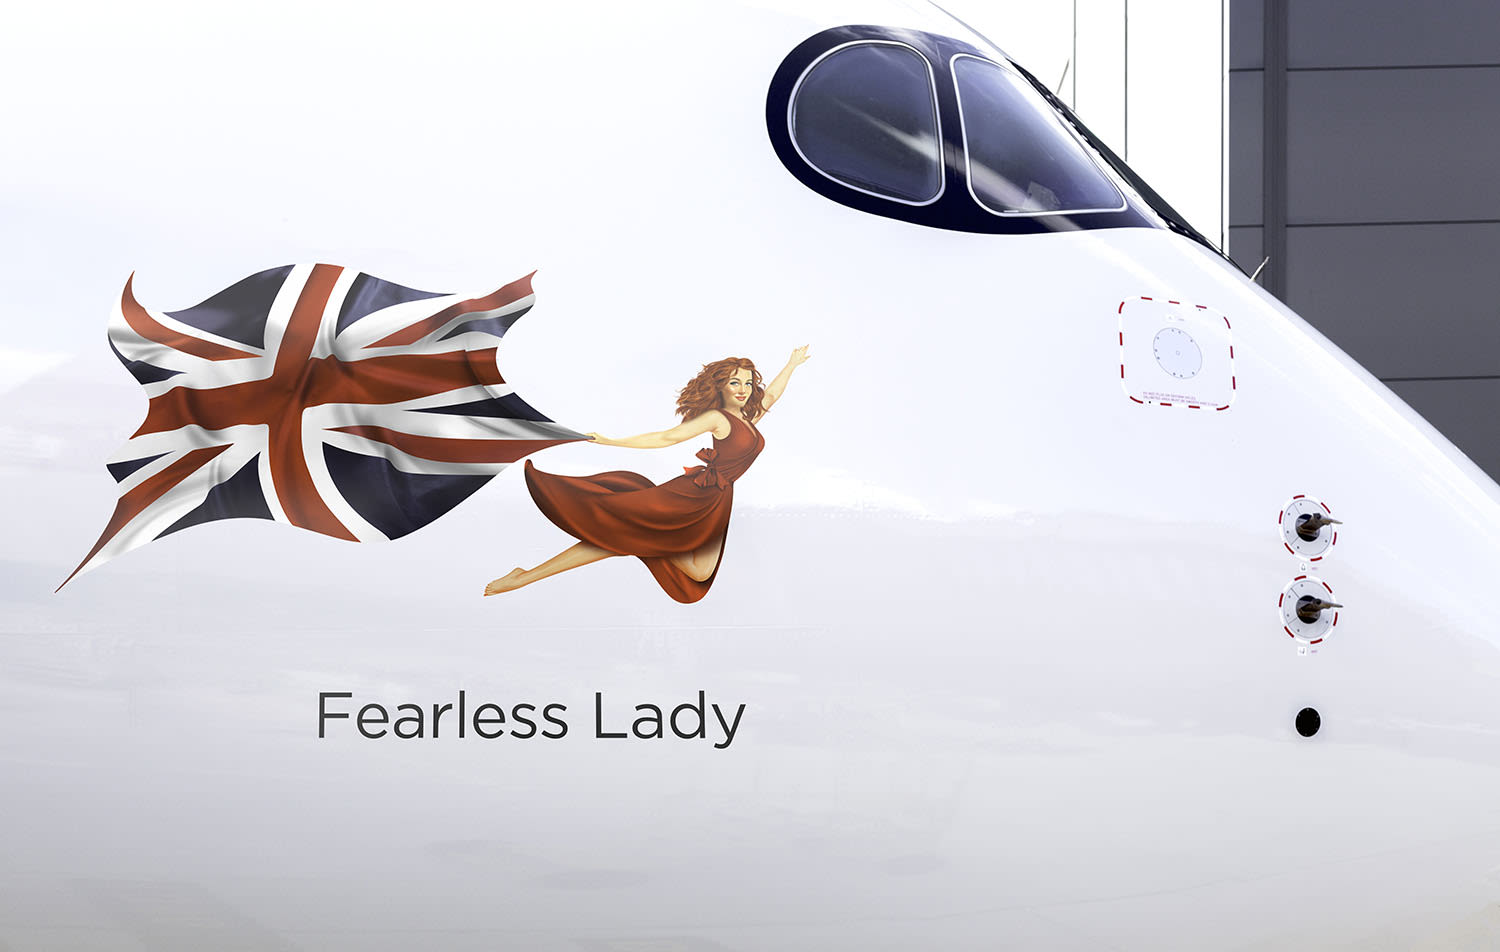 The Fearless Lady flying icon on Virgin Atlantic's plane